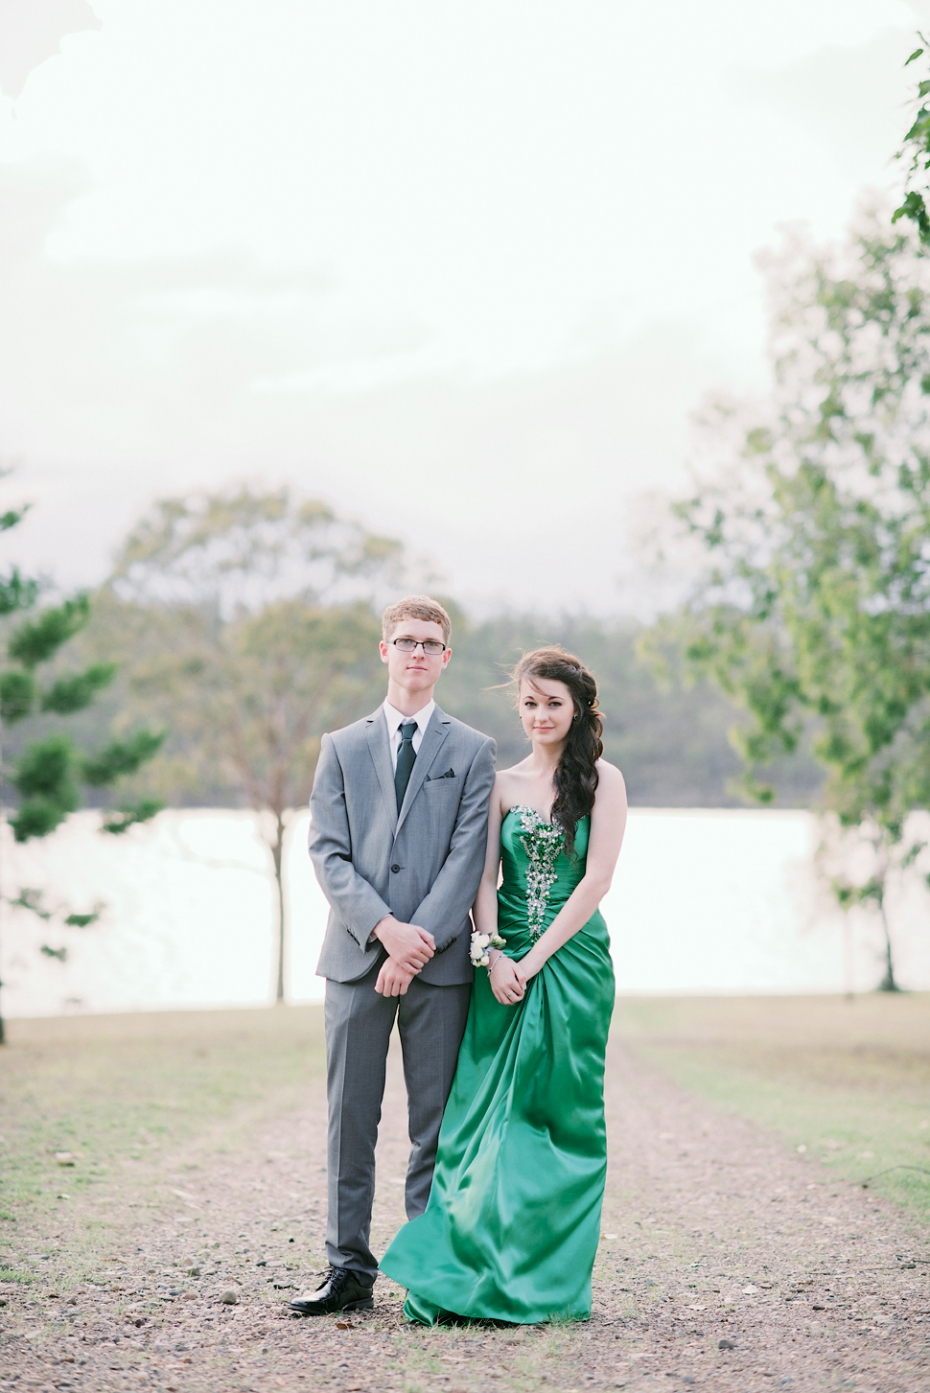 maddy-formal-wivenhoe-gold-coast-tweed-photographer001